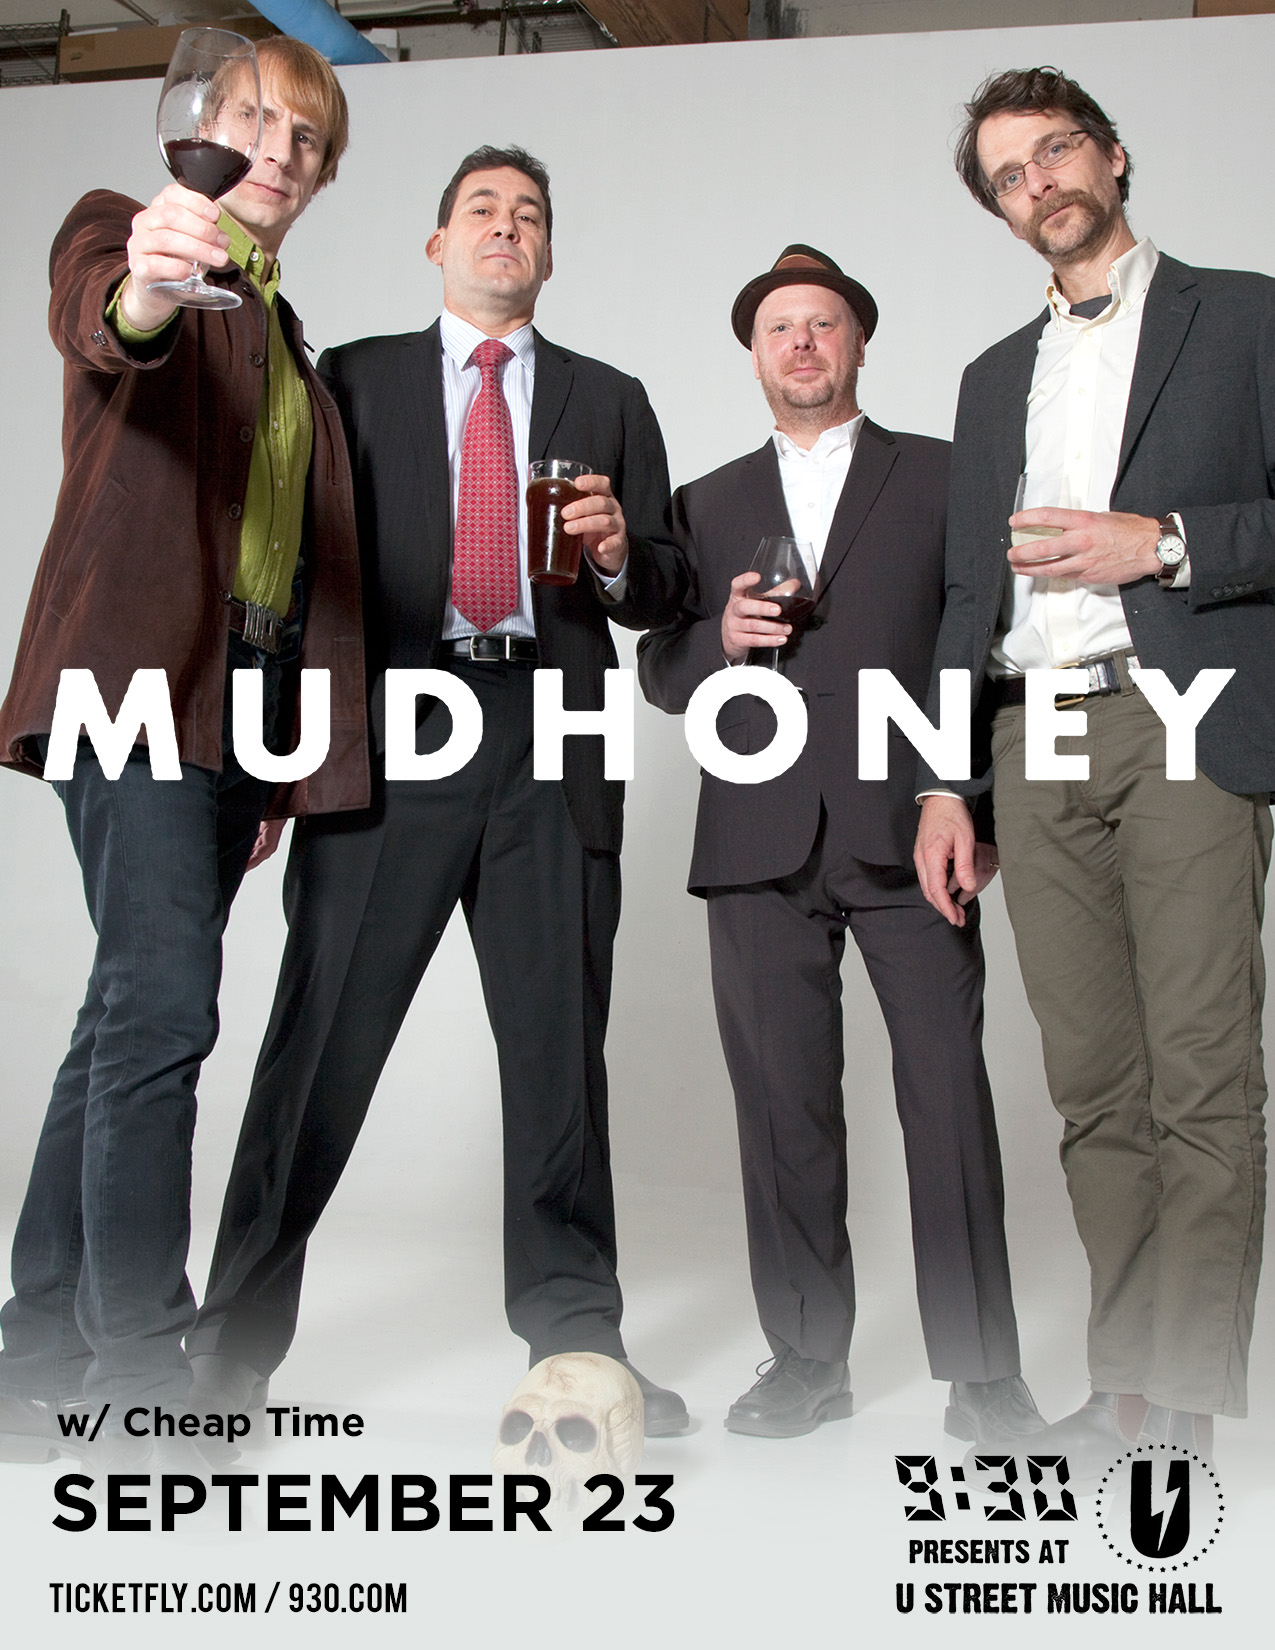 Mudhoney Ticket Giveaway!